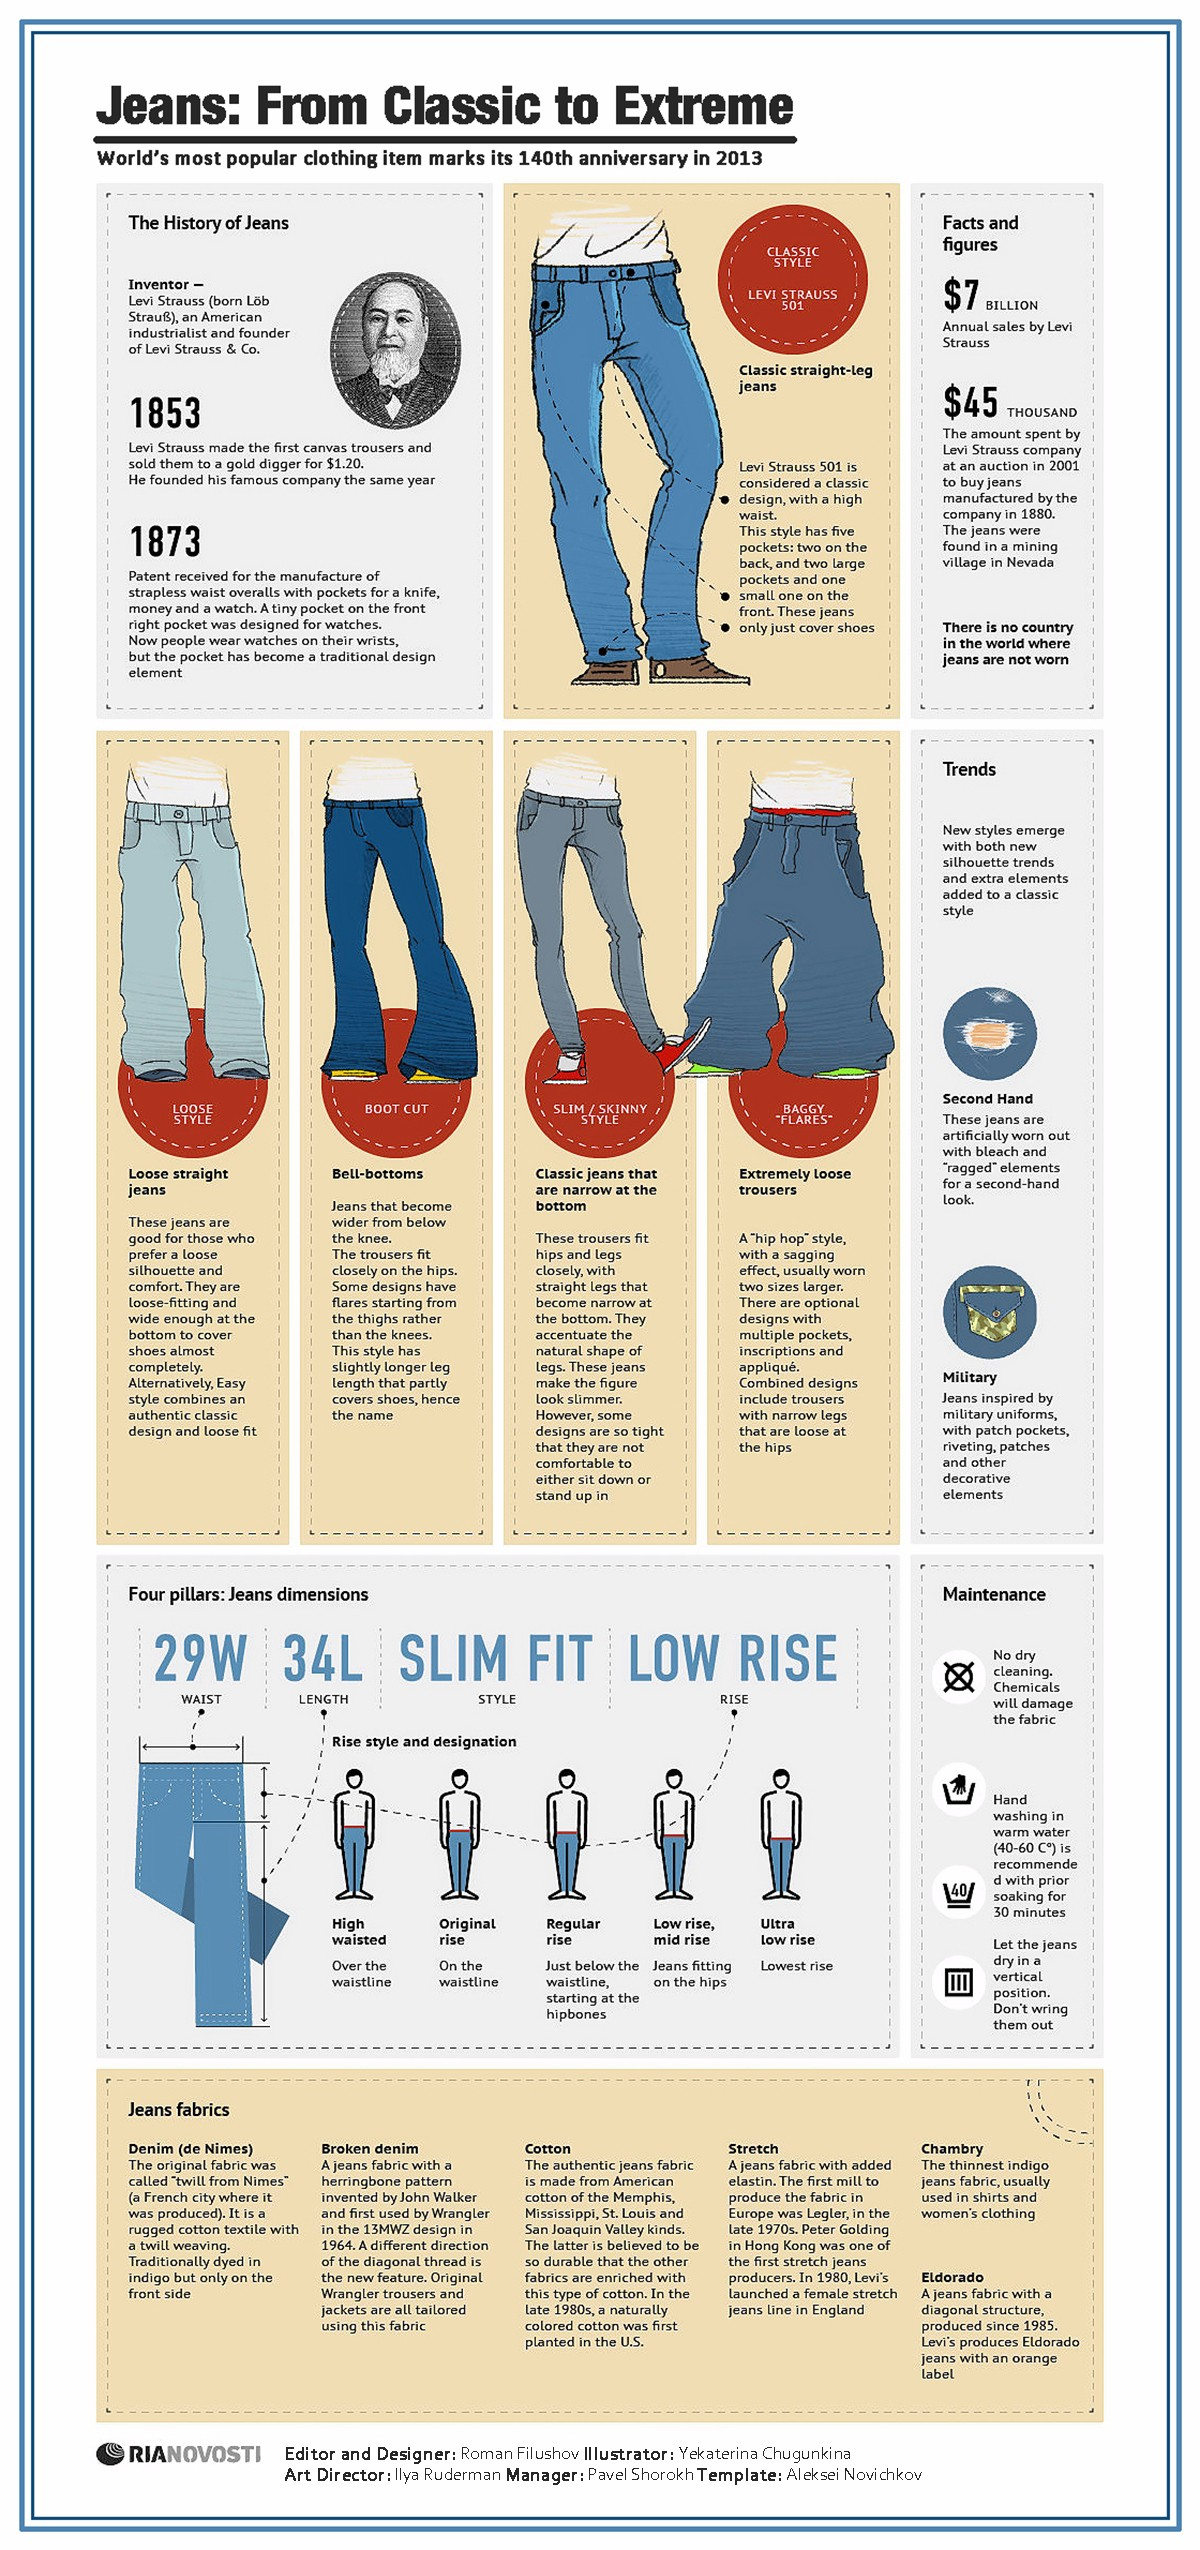 00 RIA-Novosti Infographics. Jeans. From Classic to Extreme. 2013